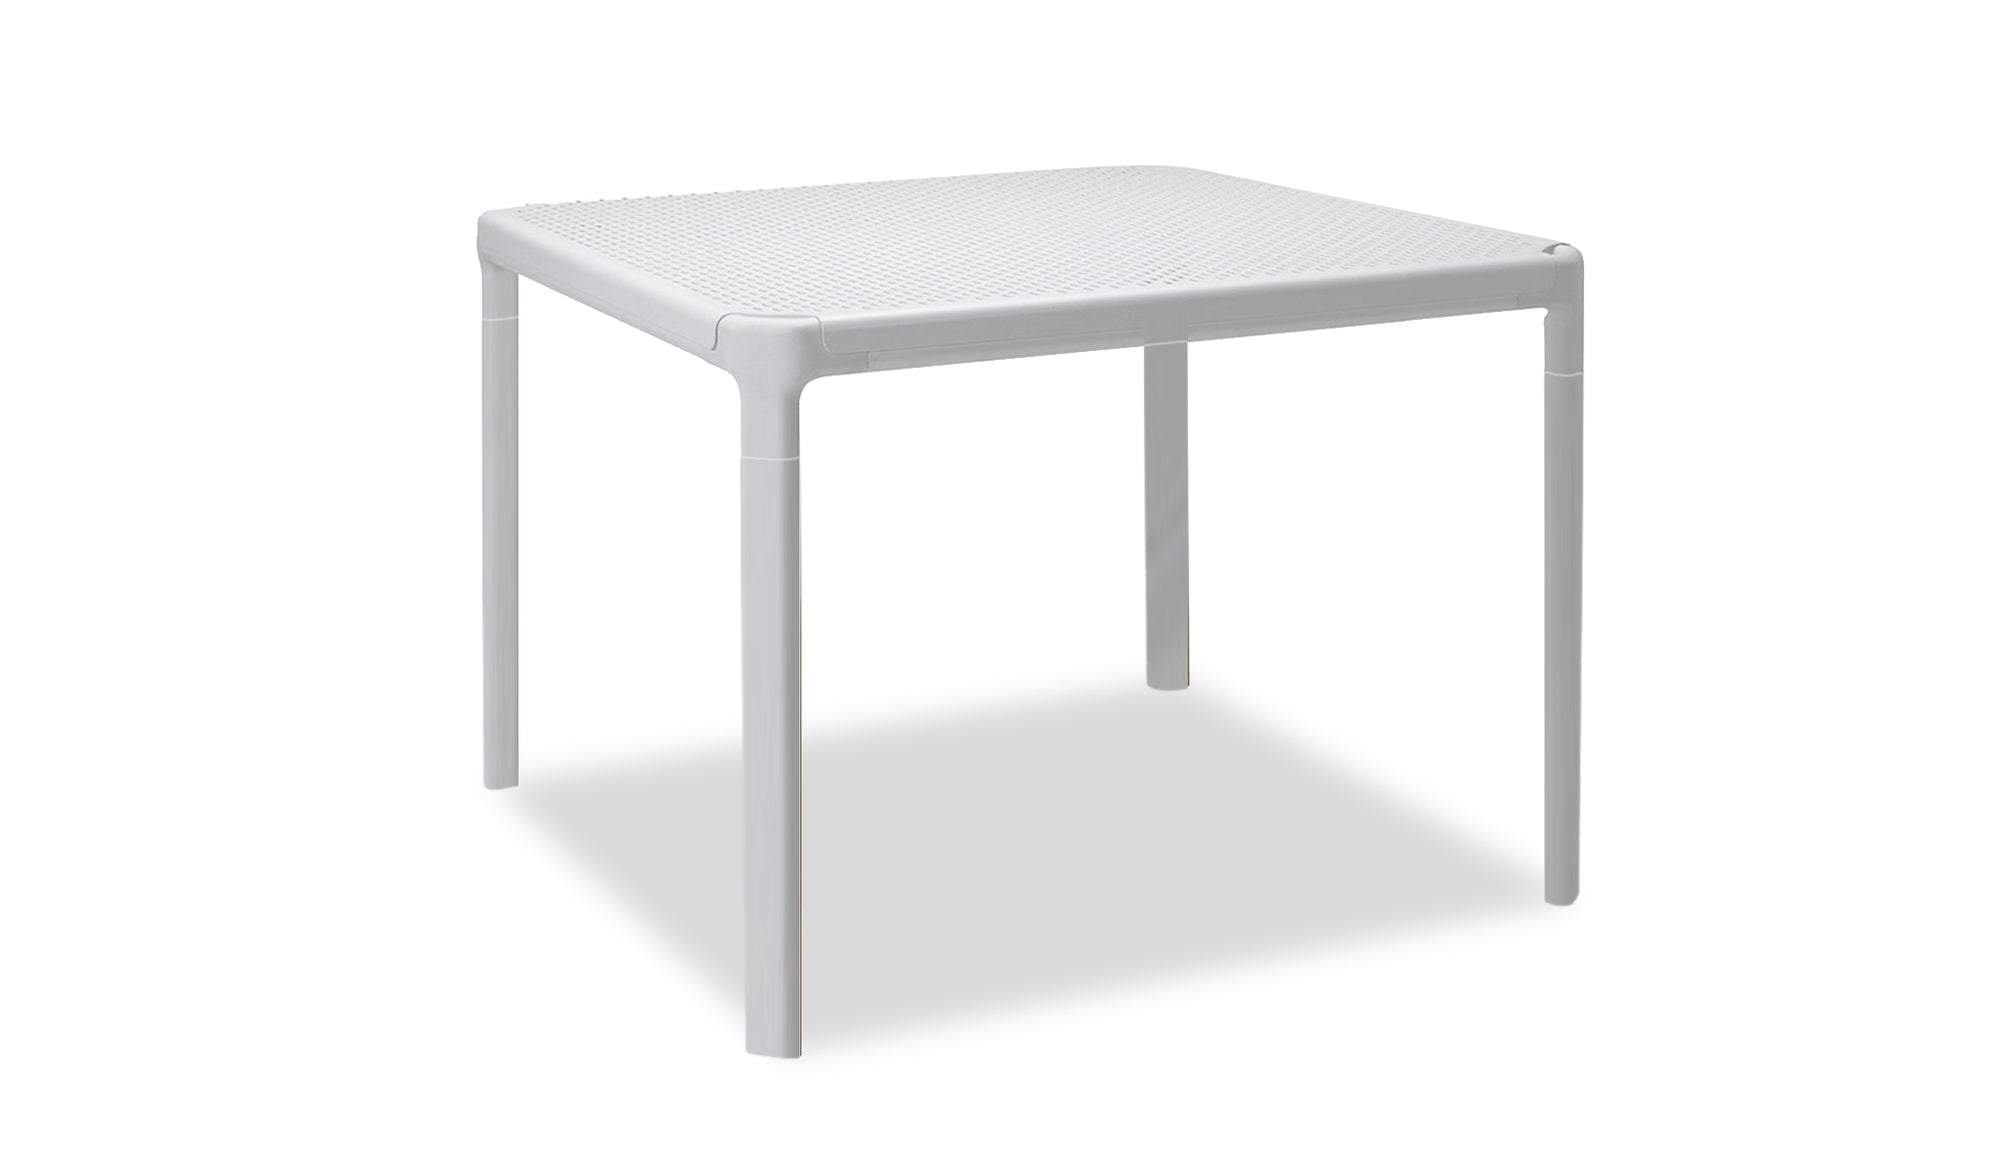 AT800 Outdoor Aluminium Table | 83 x 83